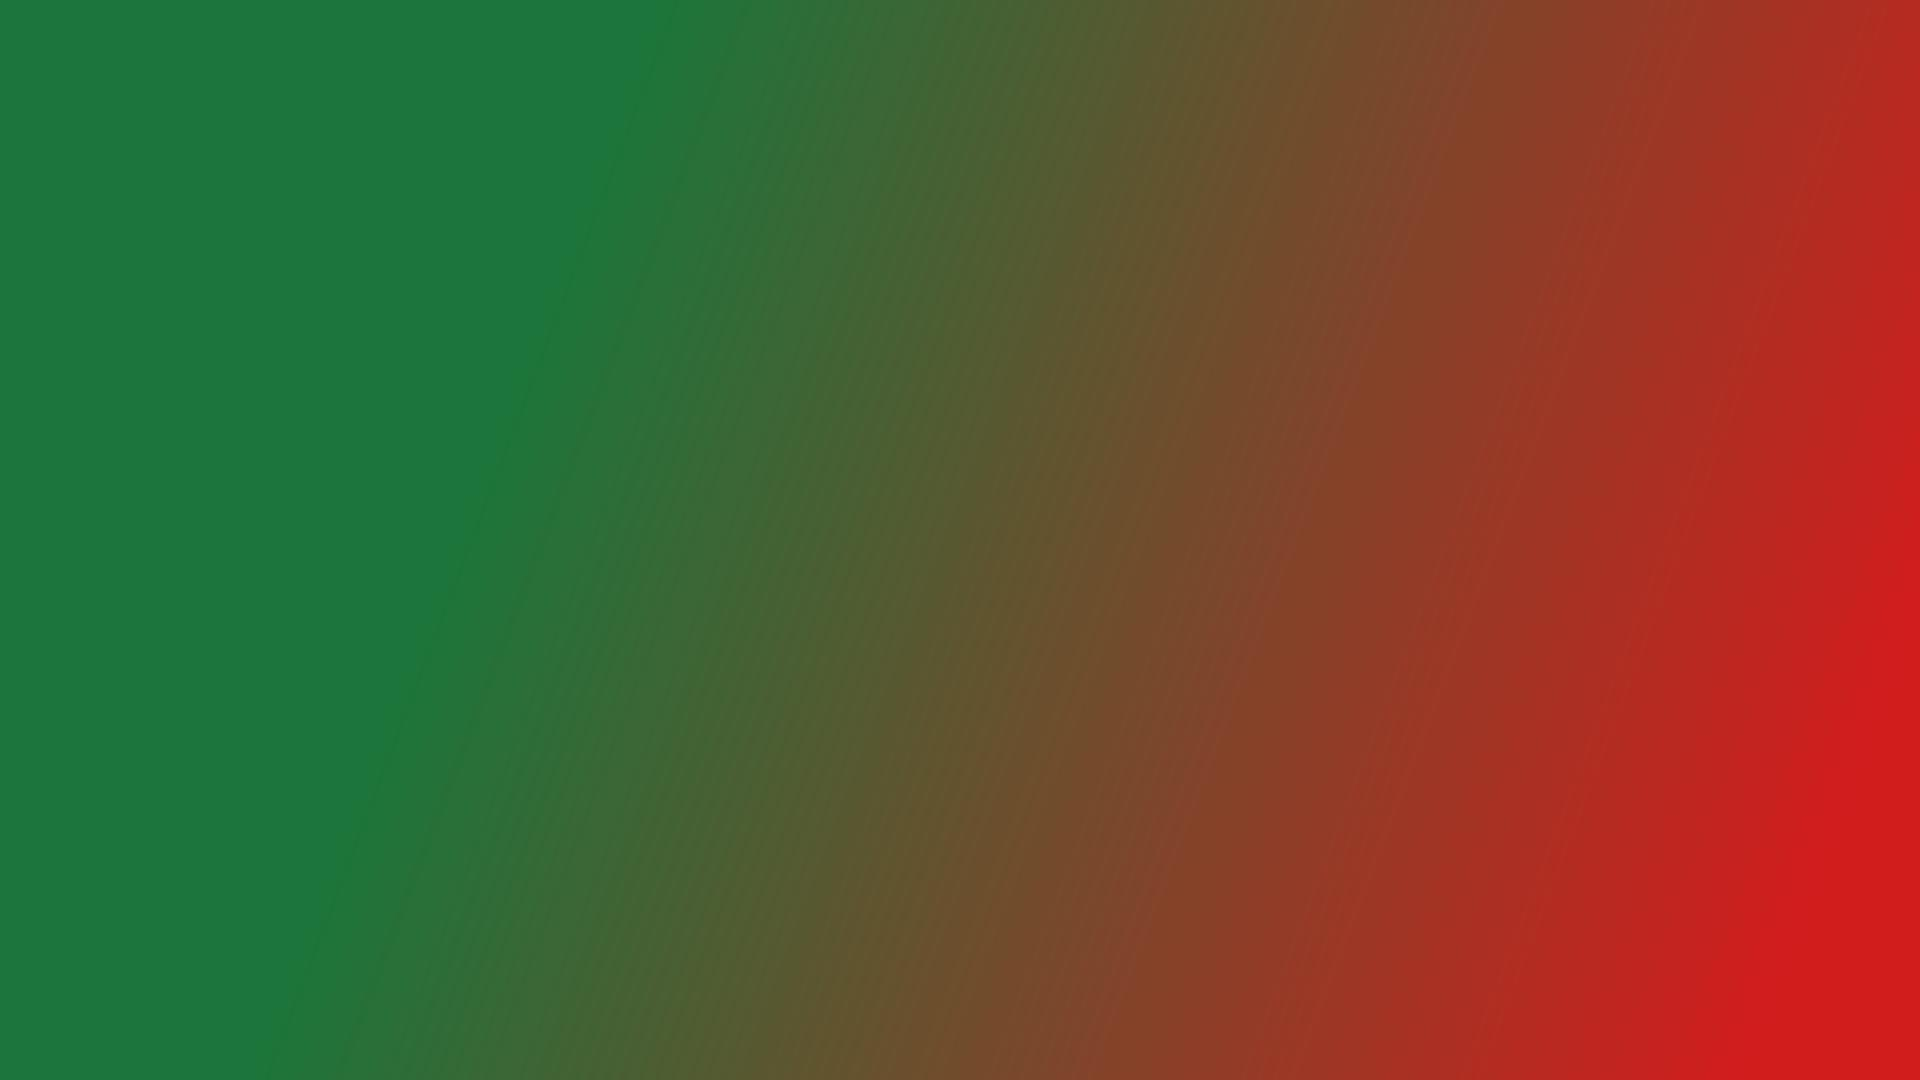 RED TP GREEN Gradient